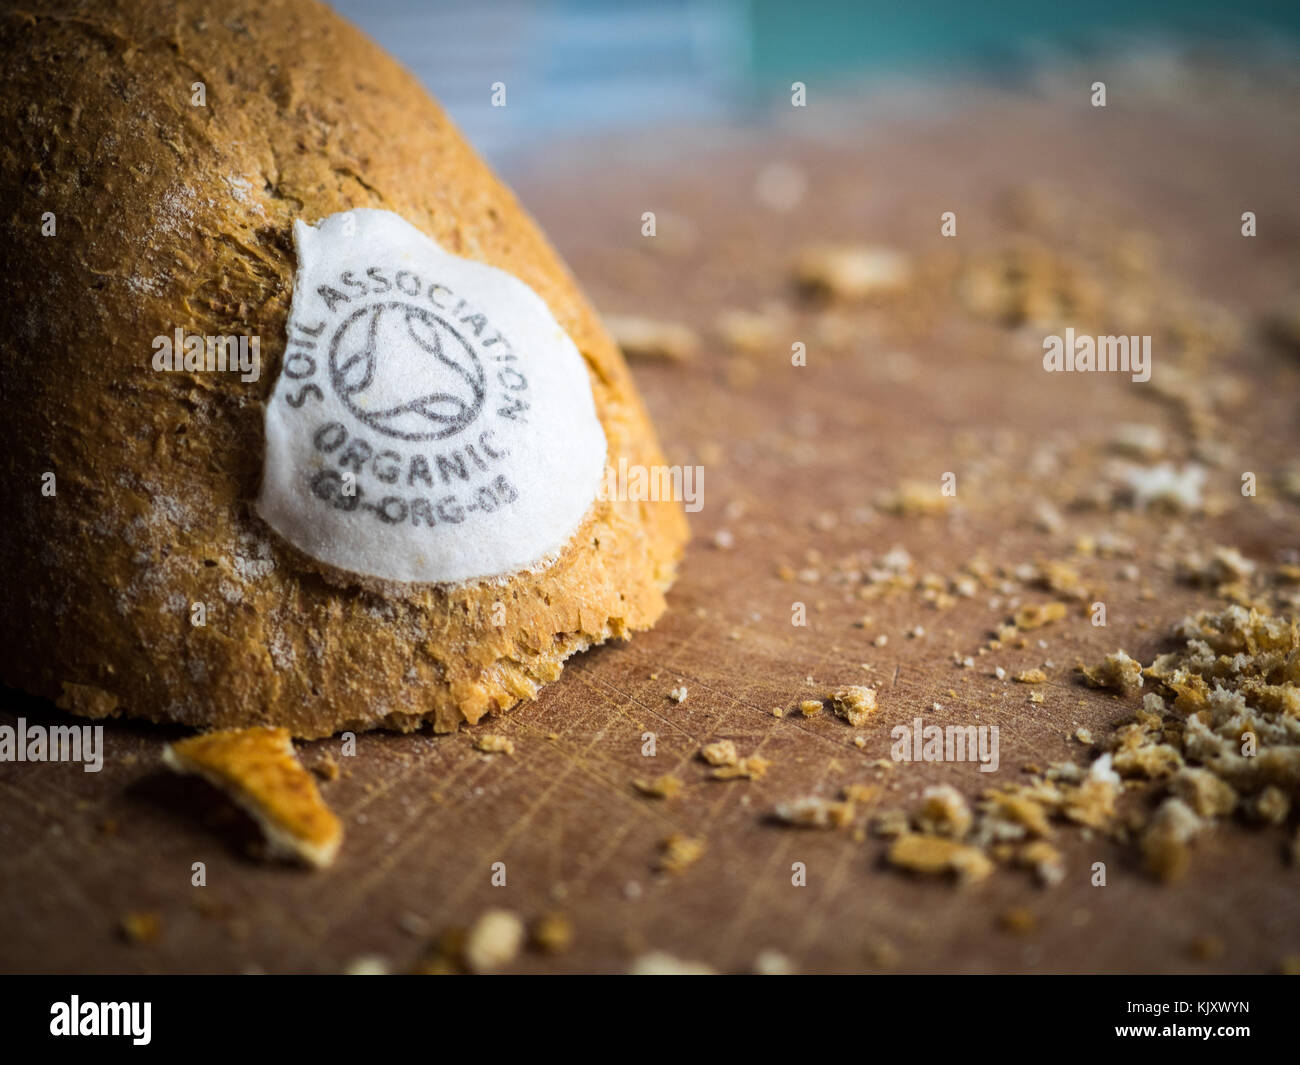 Soil Association Certified / Labelled Organic Bread - Stock Image